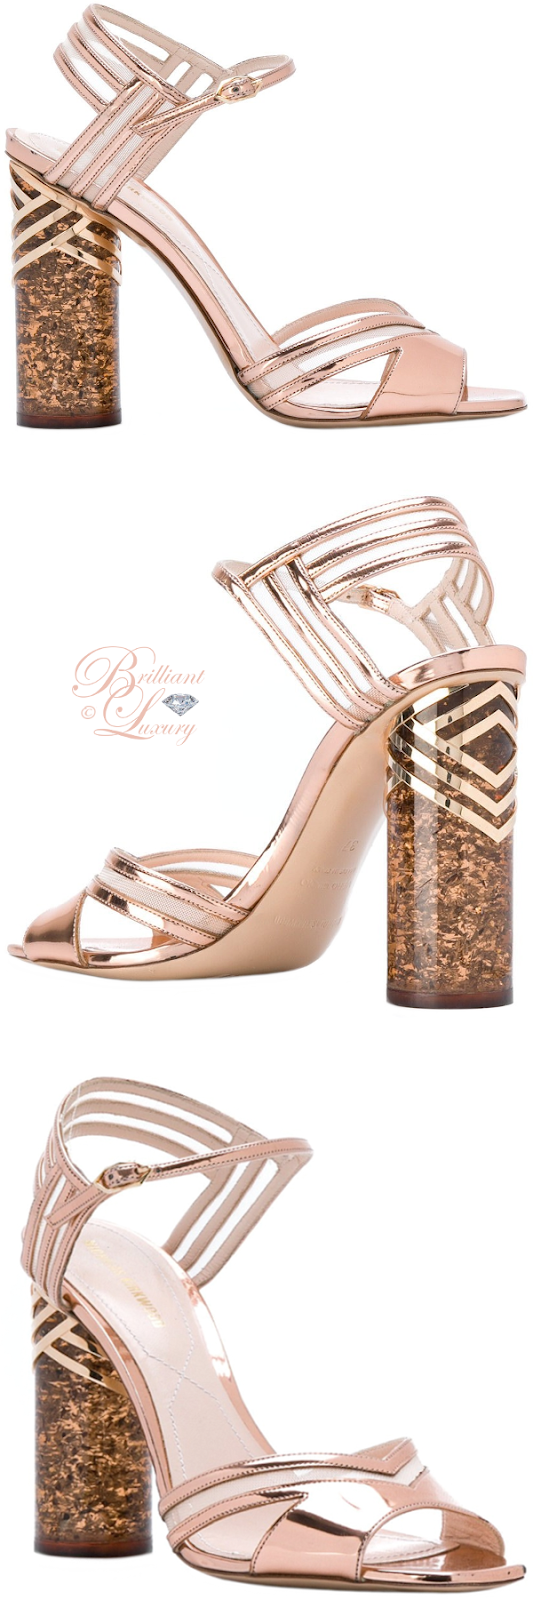 Brilliant Luxury ♦ Nicolas Kirkwood Zaha sandals in rose gold